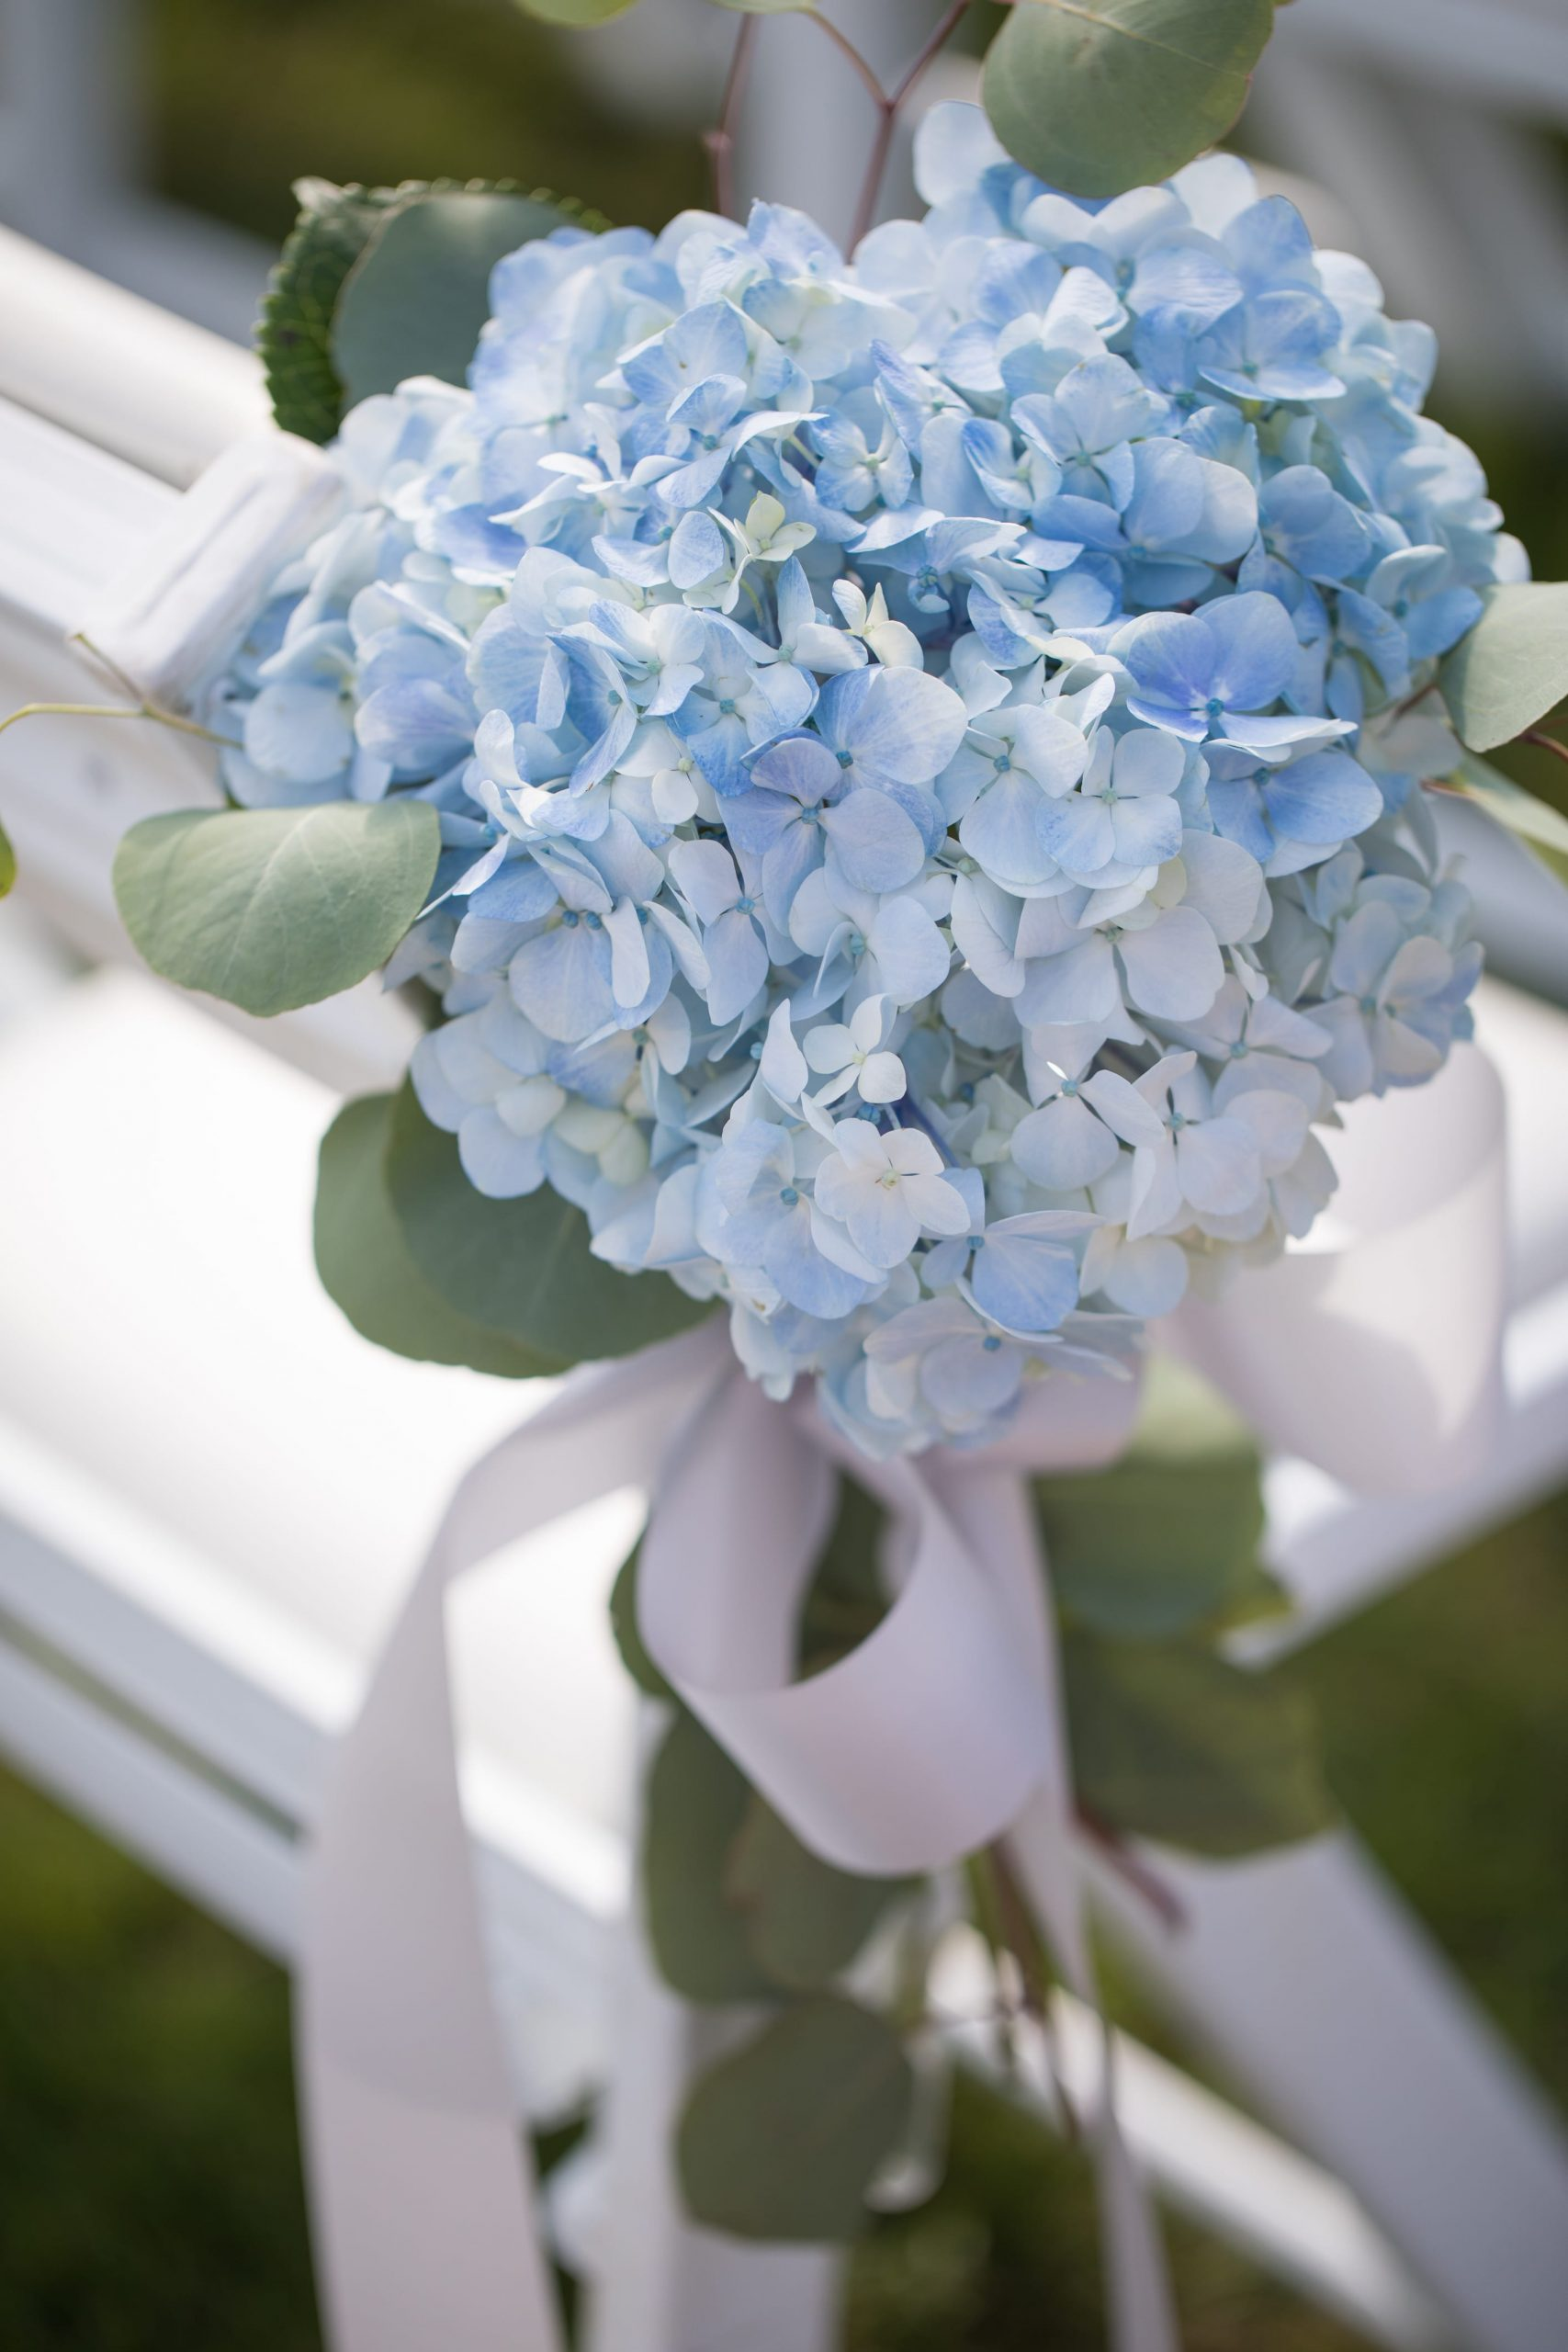 blue floral details on chairs at wedding ceremony